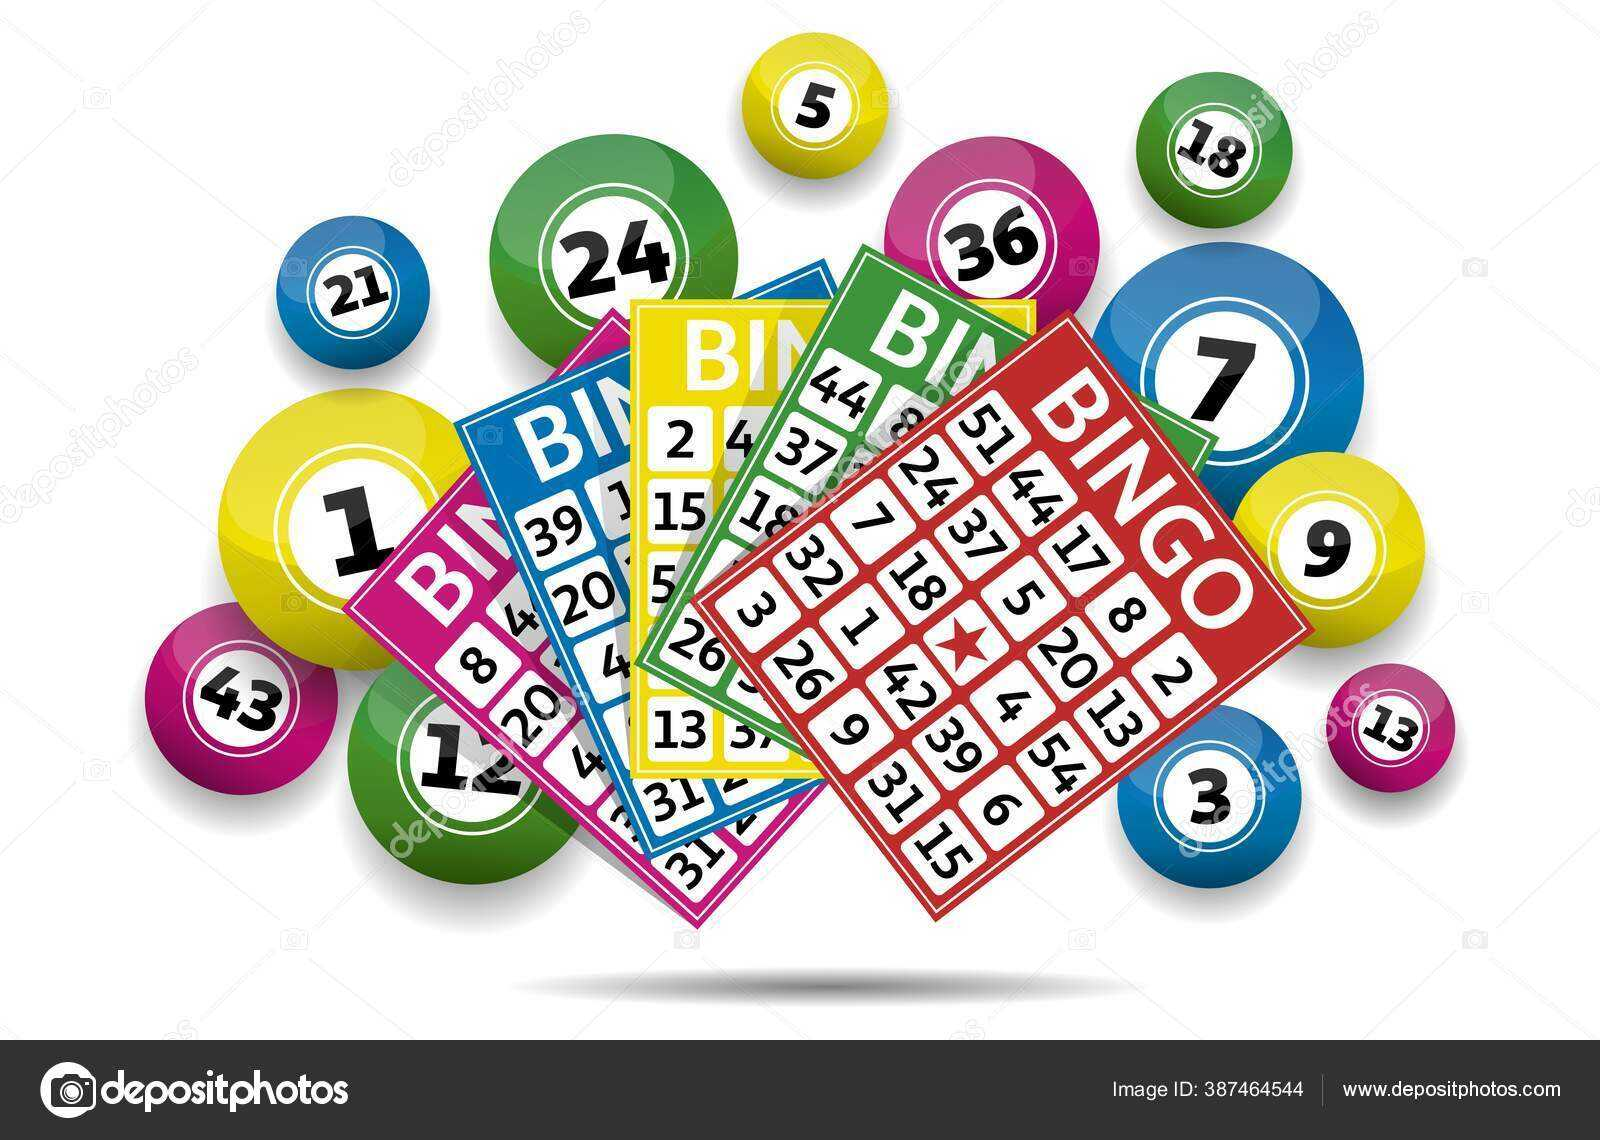 Play various bingo games, rules and regulations